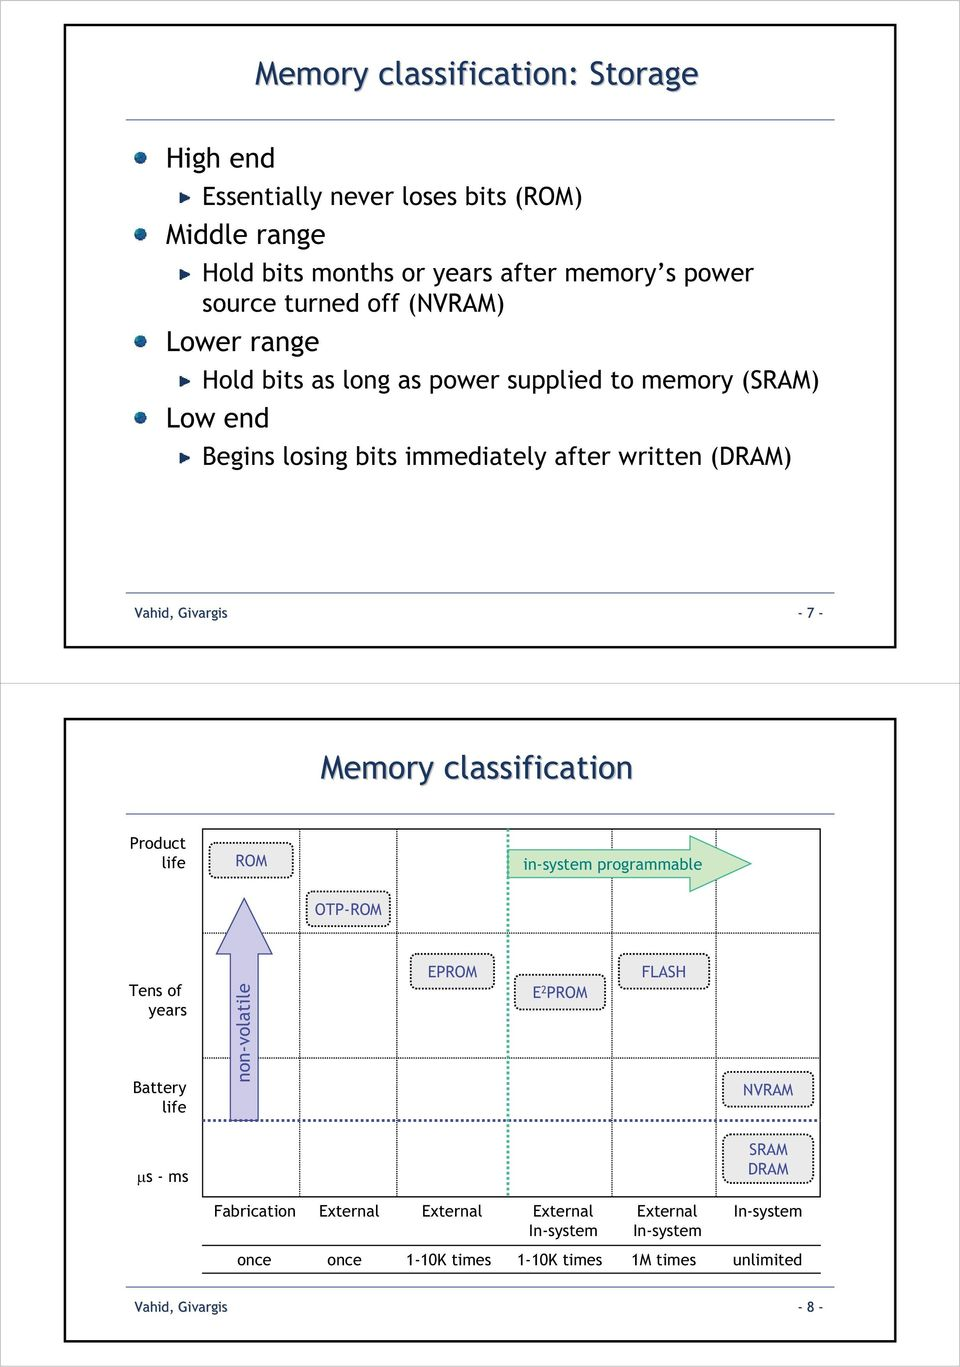 - Memory classification Product life ROM in-system programmable OTP-ROM Tens of years Battery life non-volatile EPROM E 2 PROM FLASH NVRAM s - ms SRAM